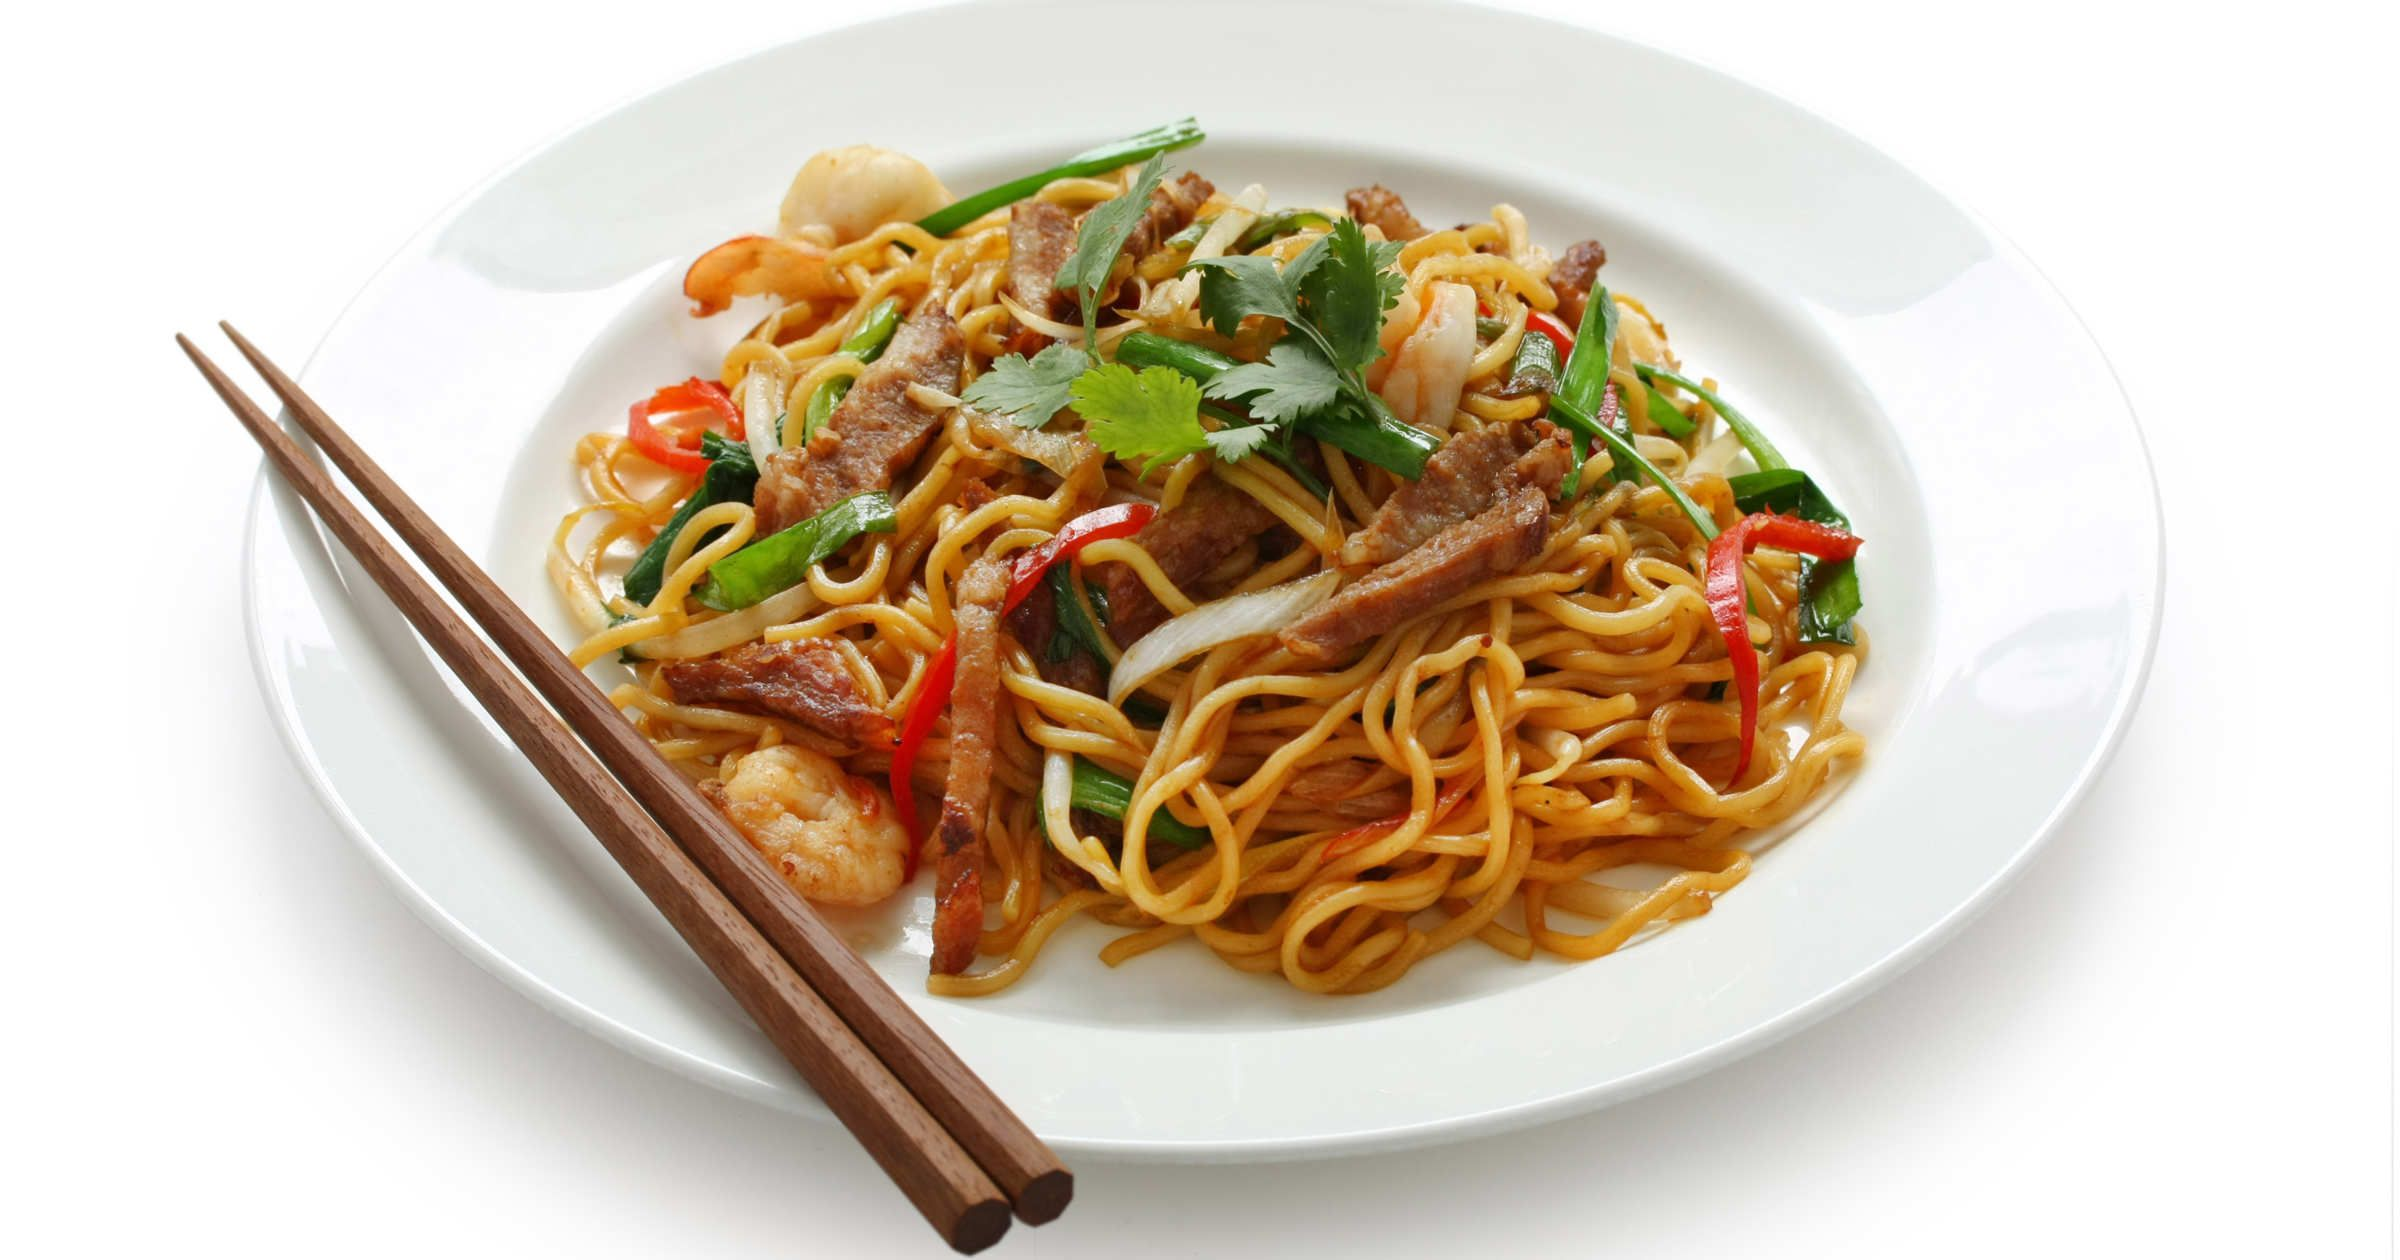 Noodles Are A Very Popluar Dish In Asia They Are Mainly Eaten In East Asia In Countries Like Japan And China But The Best Chinese Food Food Chinese Takeaway